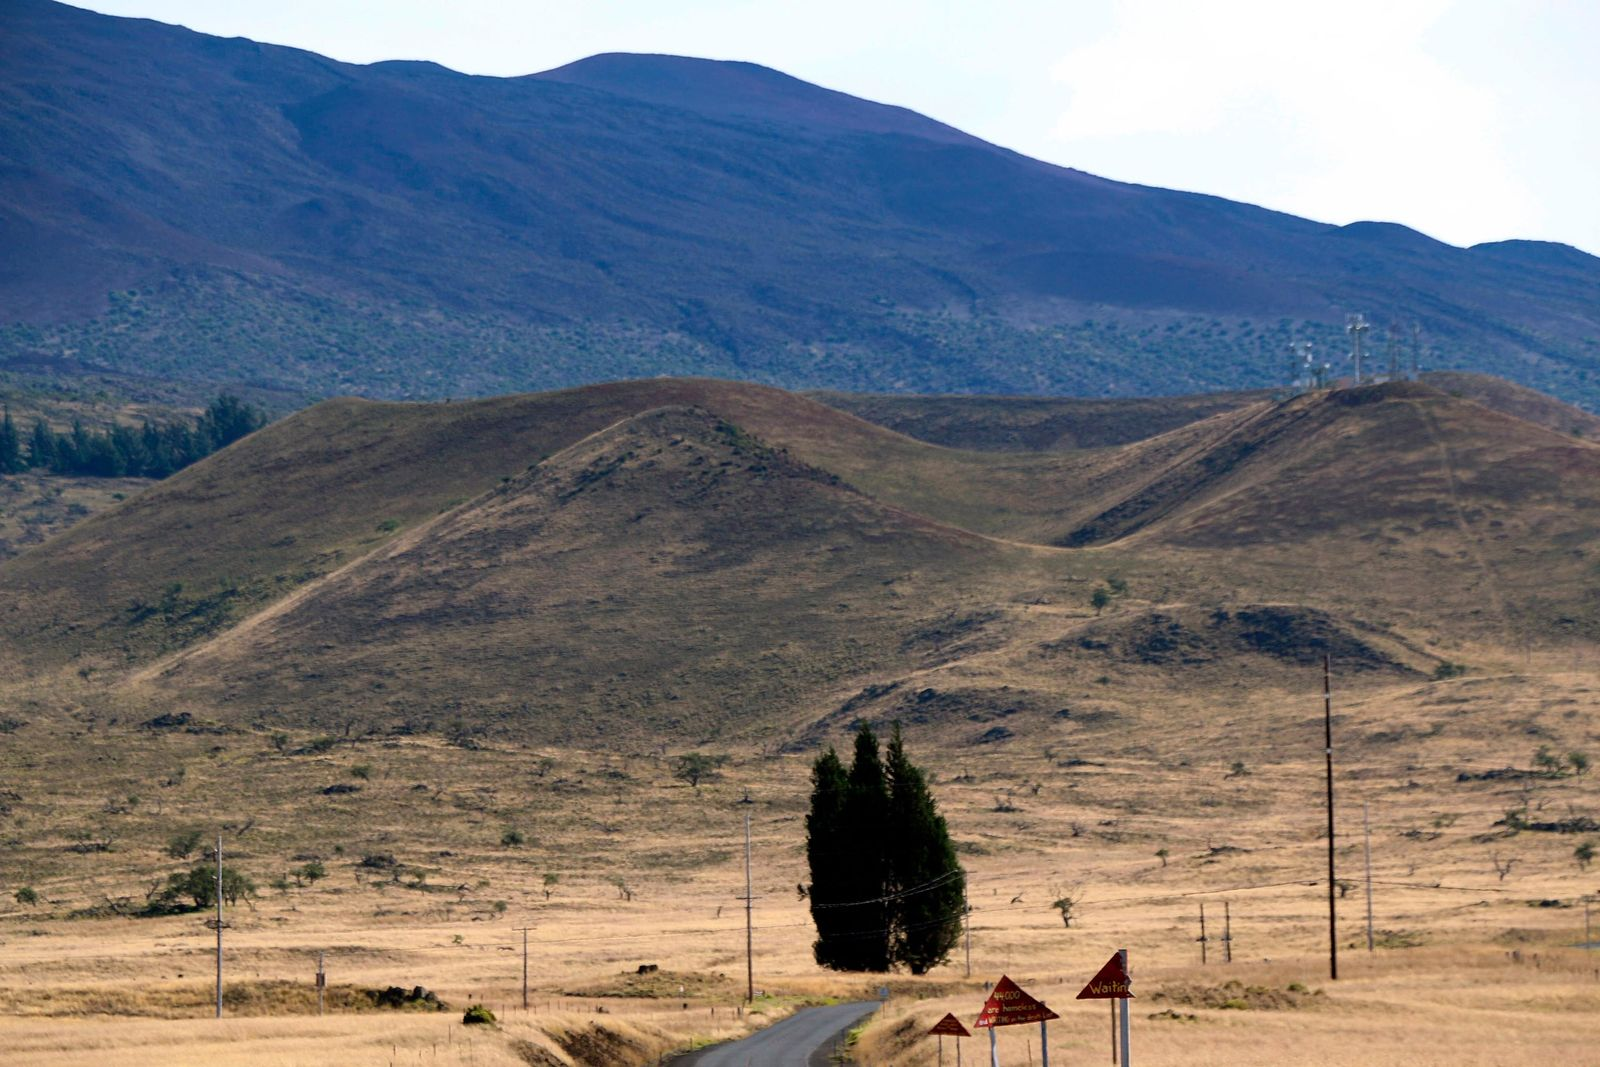 This photo provided by the Hawaii Department of Land and Natural Resources (DLNR) shows the road to Mauna Kea, a mountain considered sacred by some Native Hawaiians, in the distance, free of traffic as protesters continued to block the roadway for the fourth day Thursday, July 18, 2019. The action Thursday comes a day after 33 people were arrested, many of them elderly. Activists have fought the $1.4 billion Thirty Meter Telescope in courts and on the streets for years, but the latest protest could be their final stand as they run out of legal options. (Hawaii DLNR via AP)